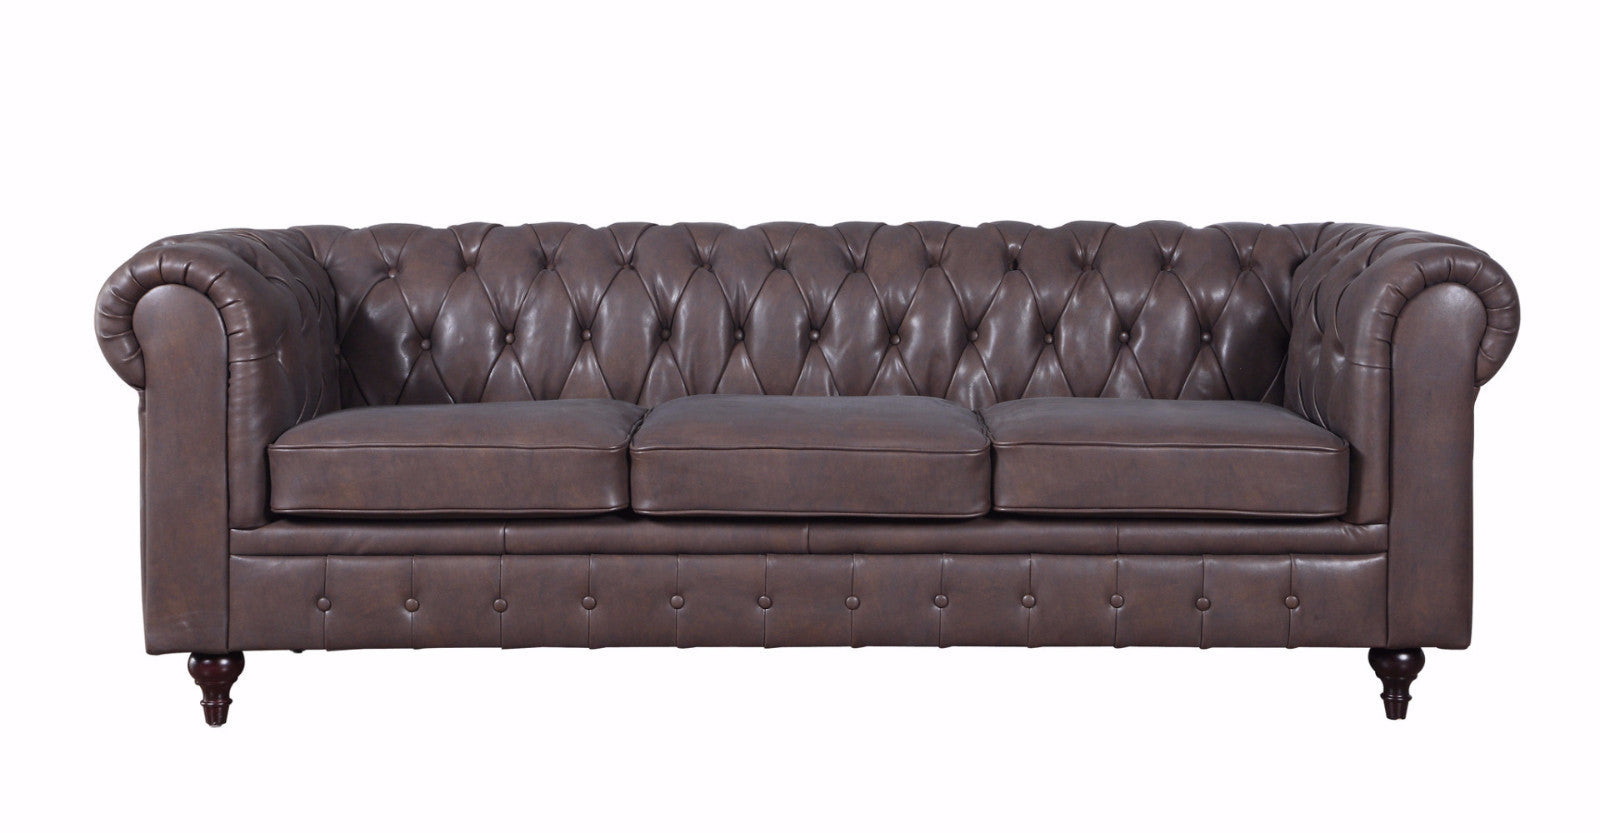 Merveilleux Charleston Classic Leather Chesterfield Sofa